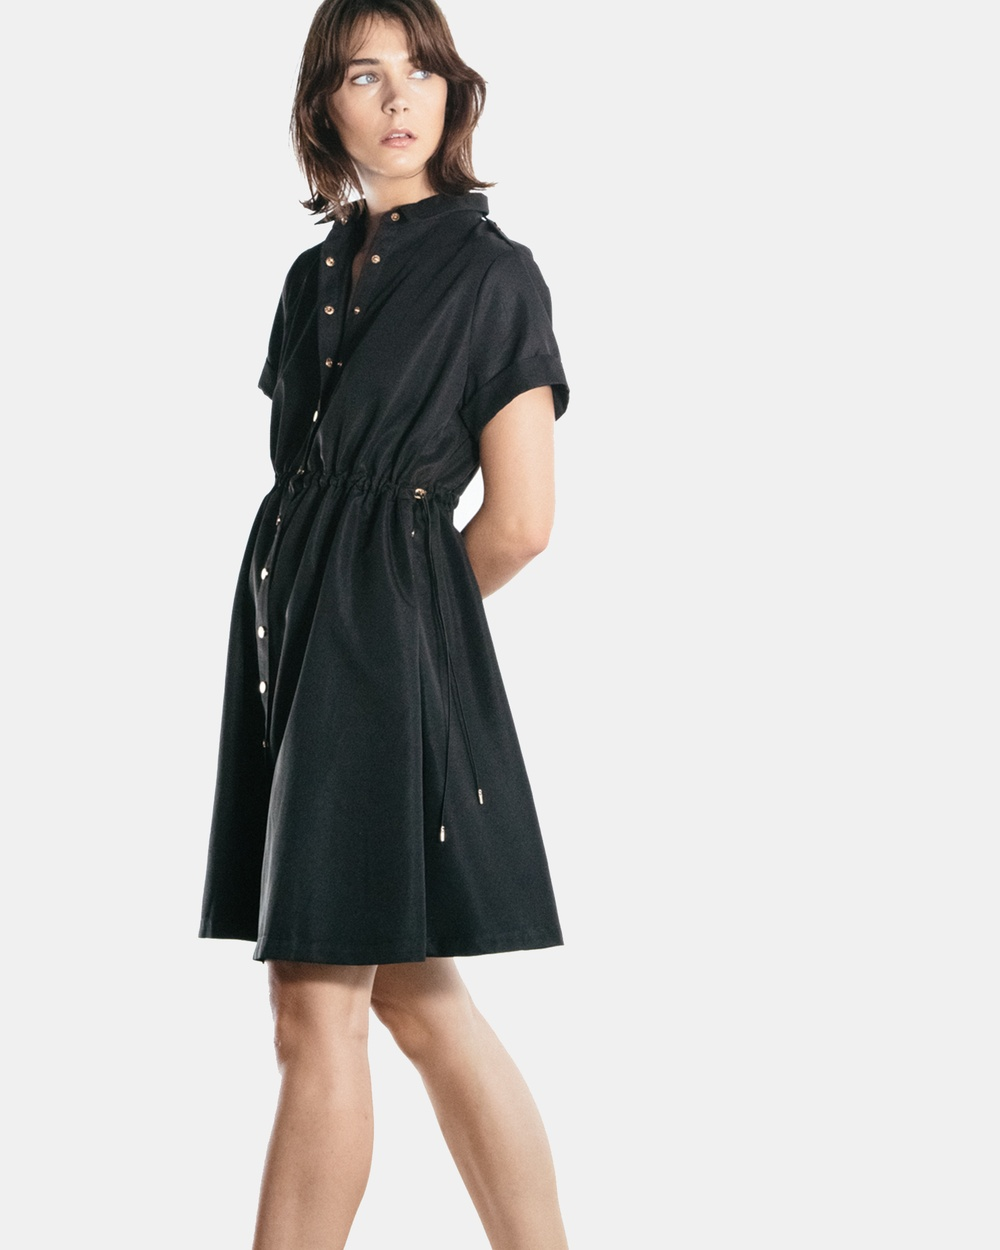 The Rushing Hour Brooklyn Poplin Shirt Dress Dresses Black Brooklyn Poplin Shirt Dress